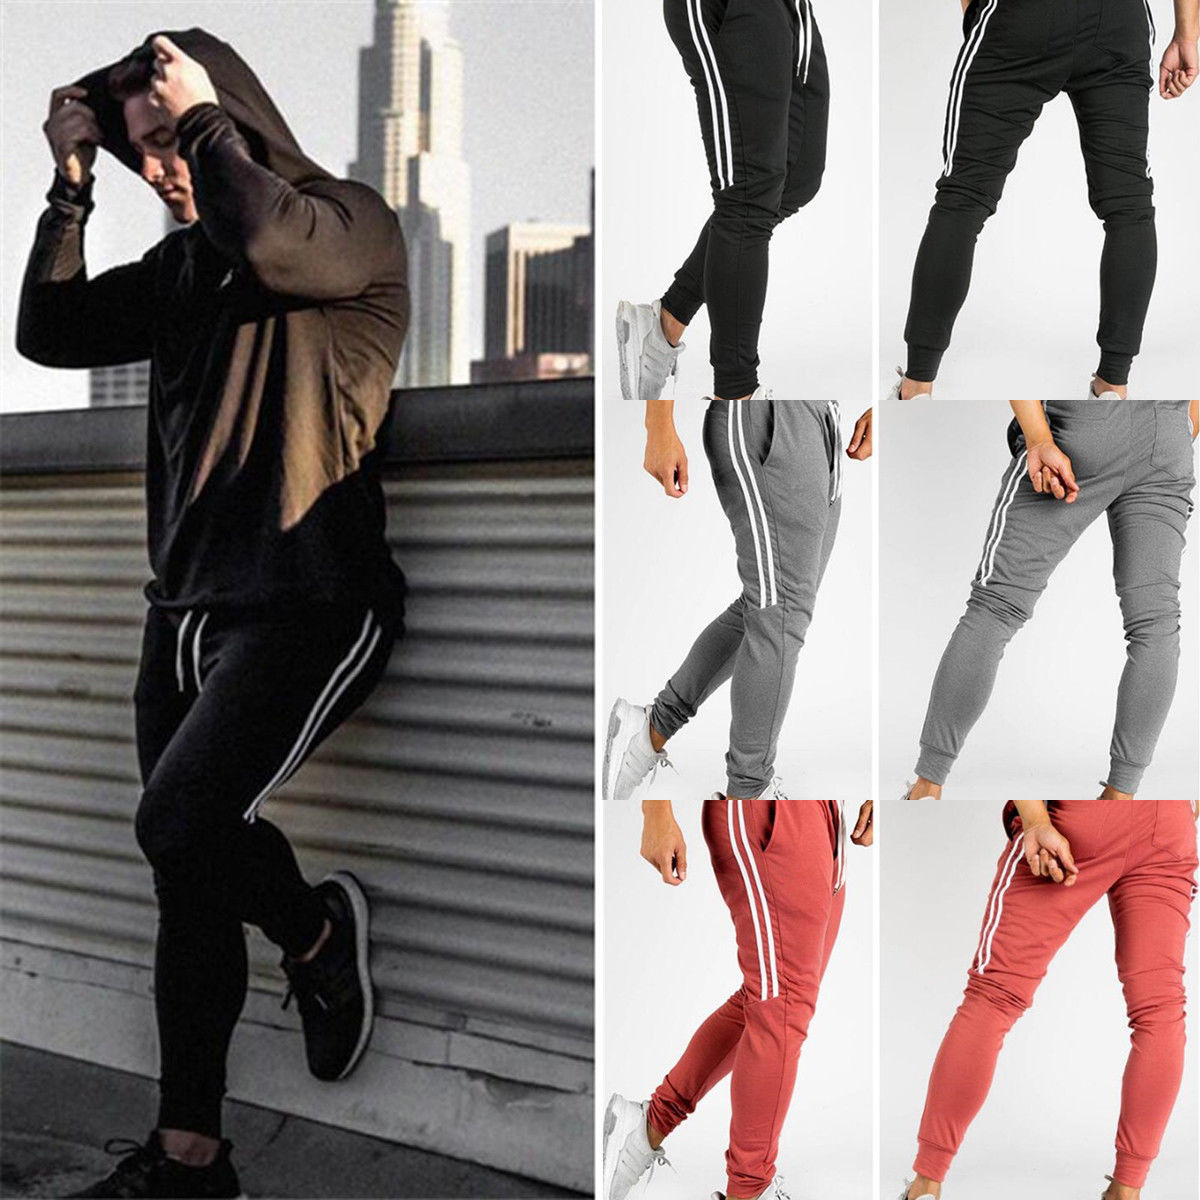 2019 Newest Hot Men Long Casual Sport Pants Gym Slim Fit Trousers Running Joggers Sweatpants